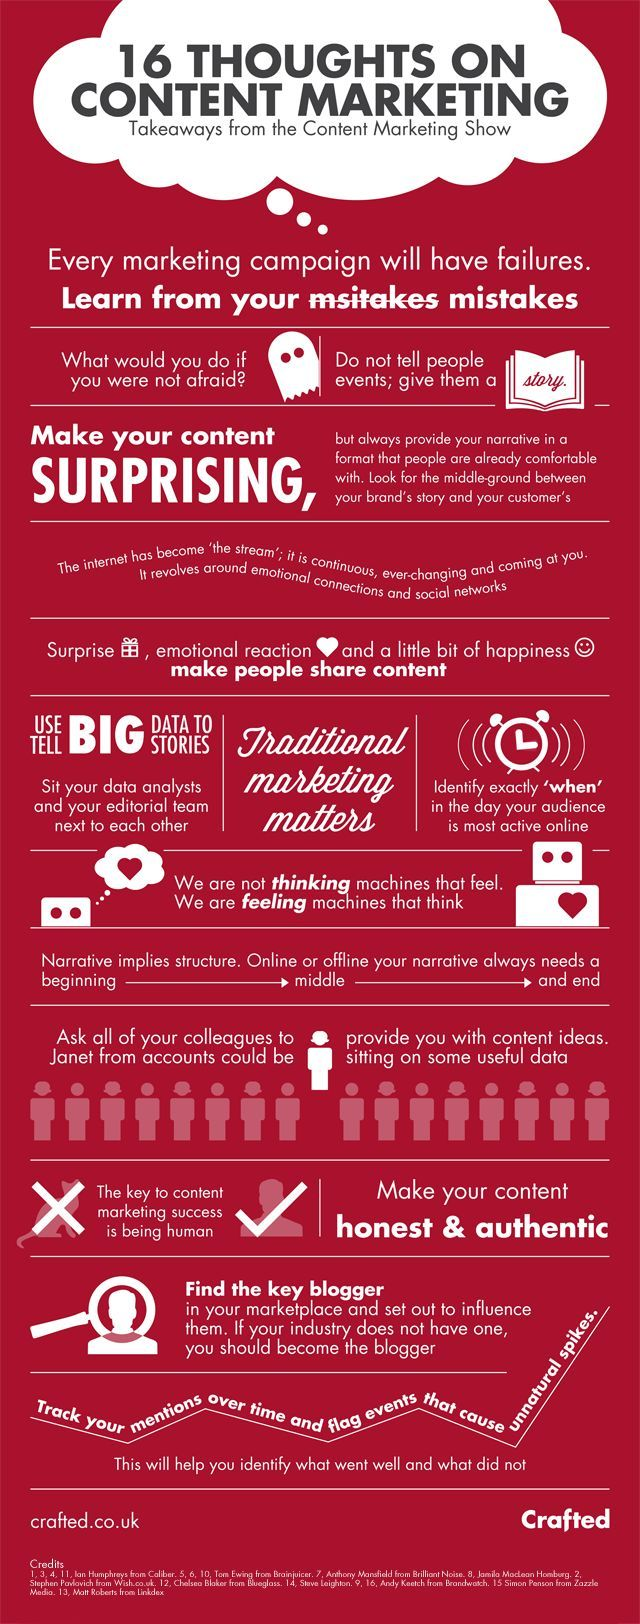 DIGITAL MARKETING - 16 thoughts on content marketing #contentmarketing #marketing #infographic.